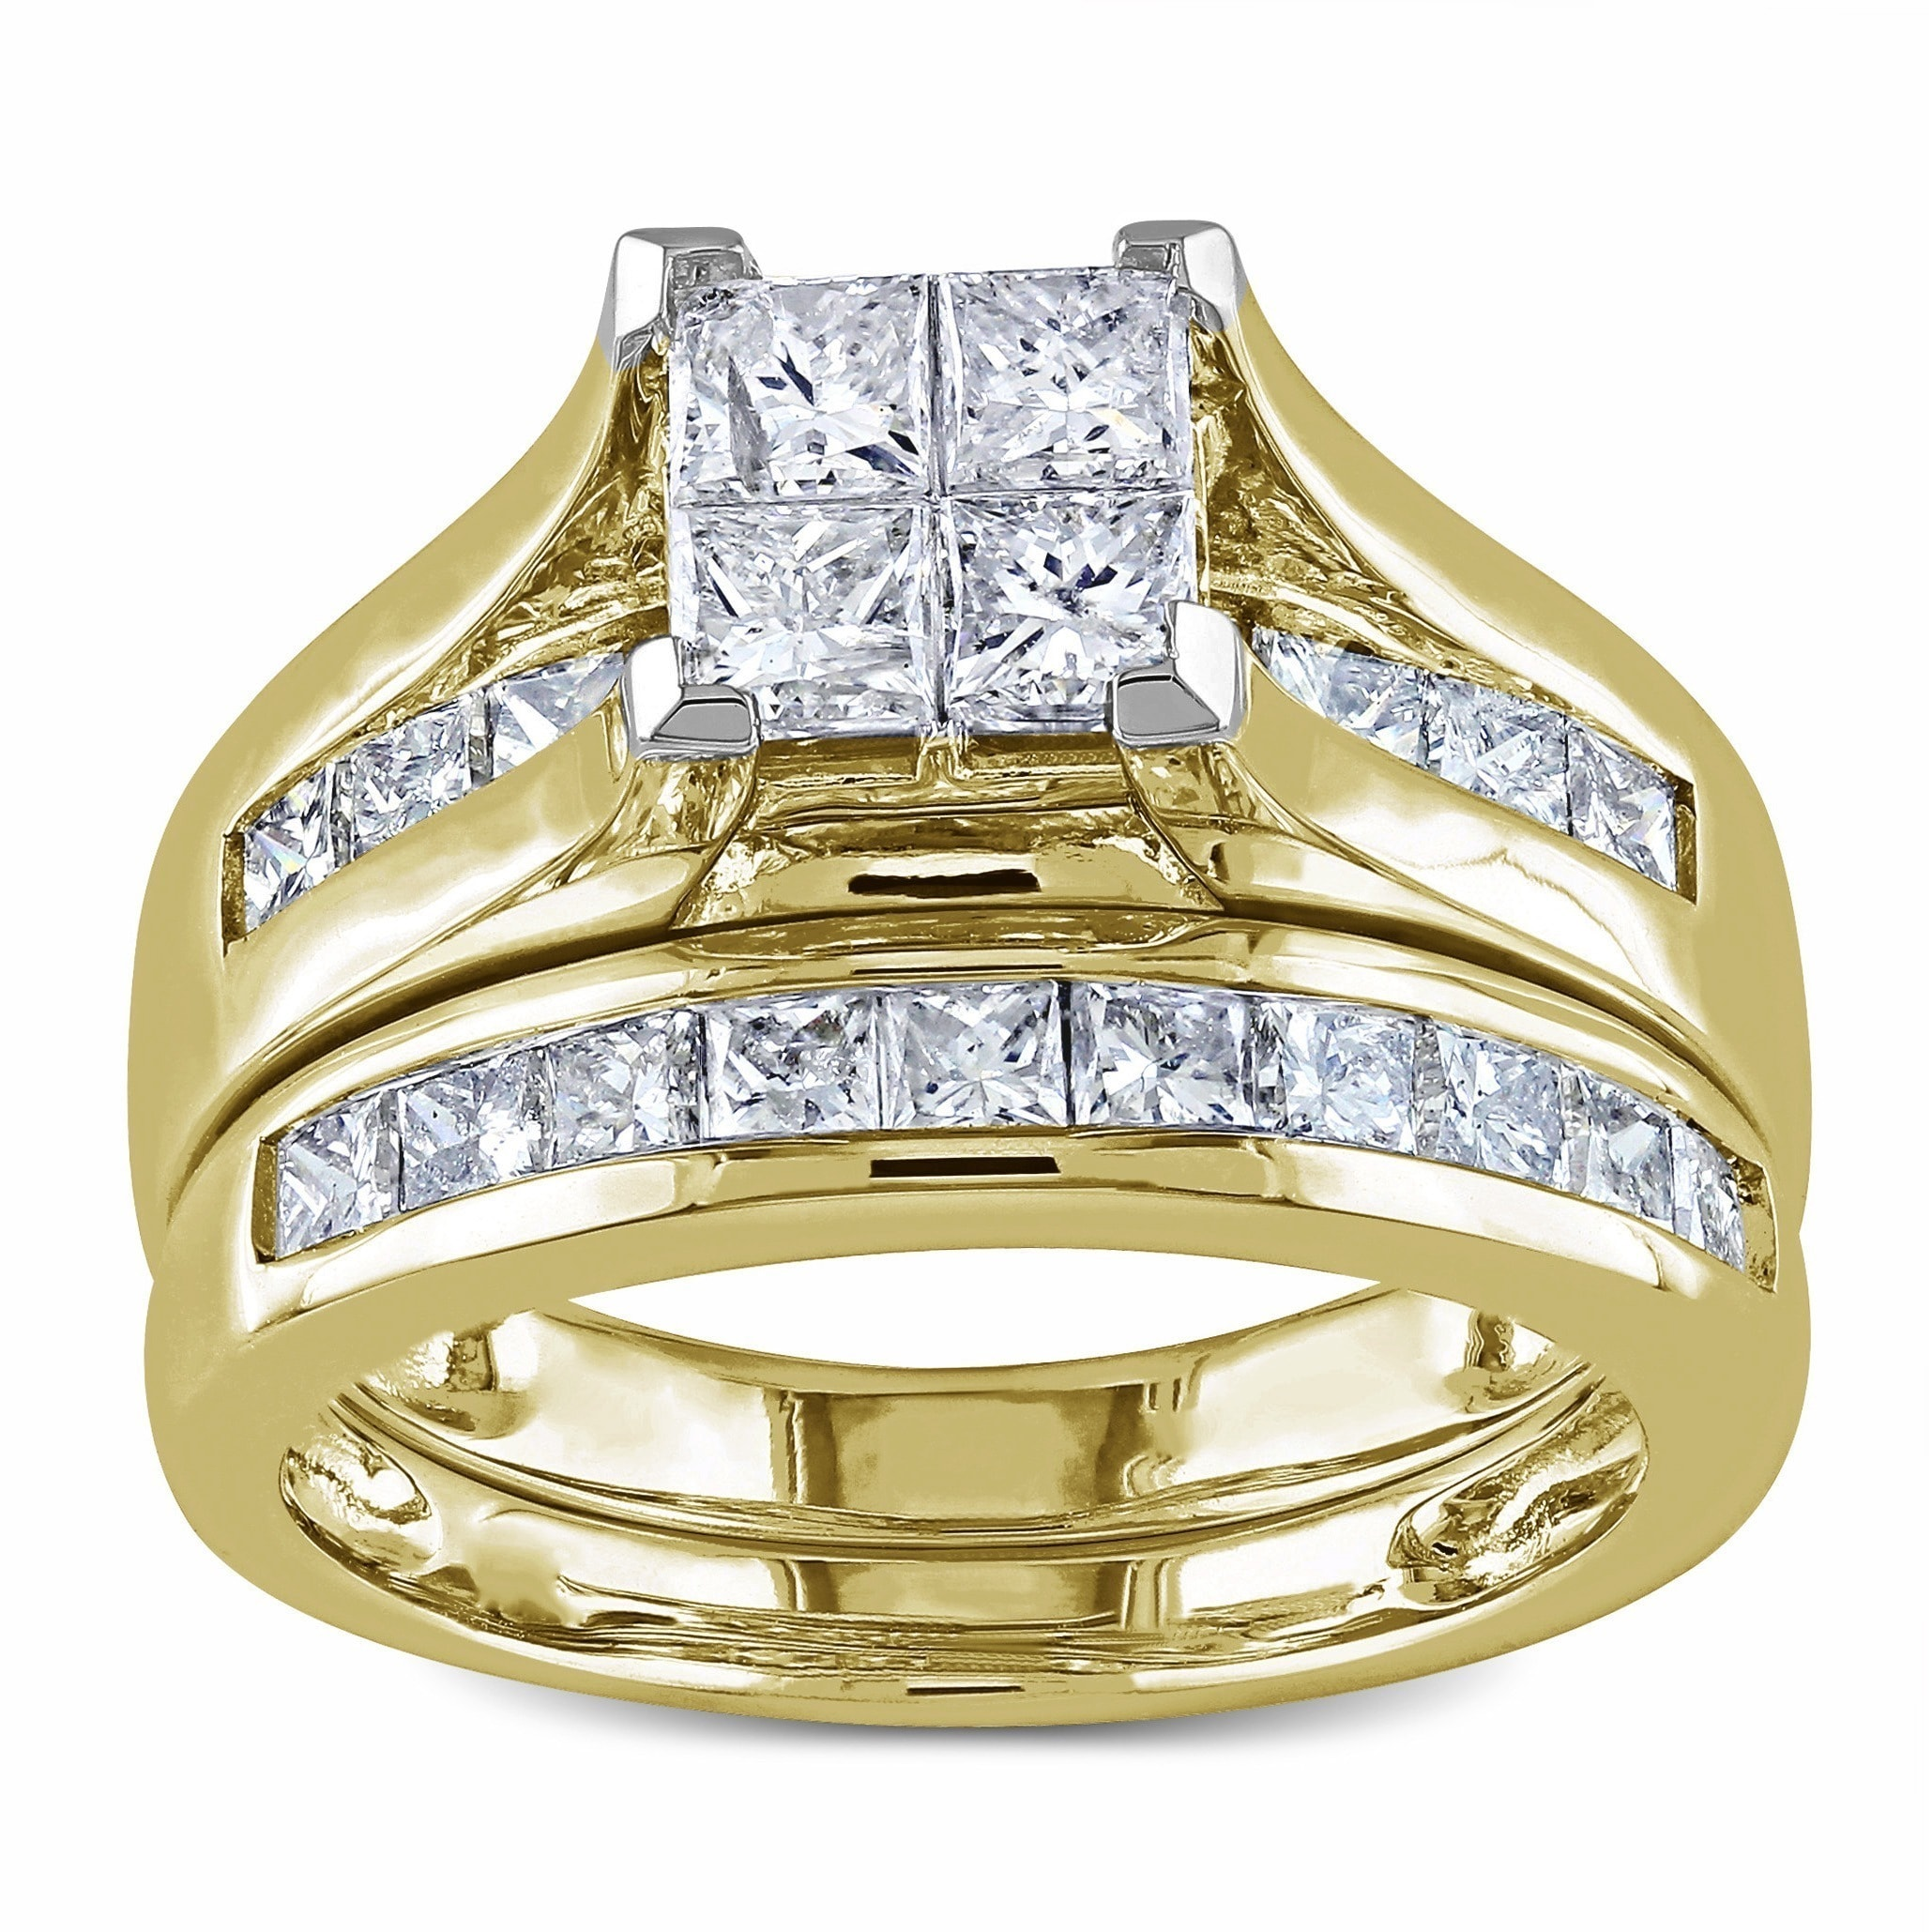 rings gold cut noventa primary stone diamond square princess in riddles white ring